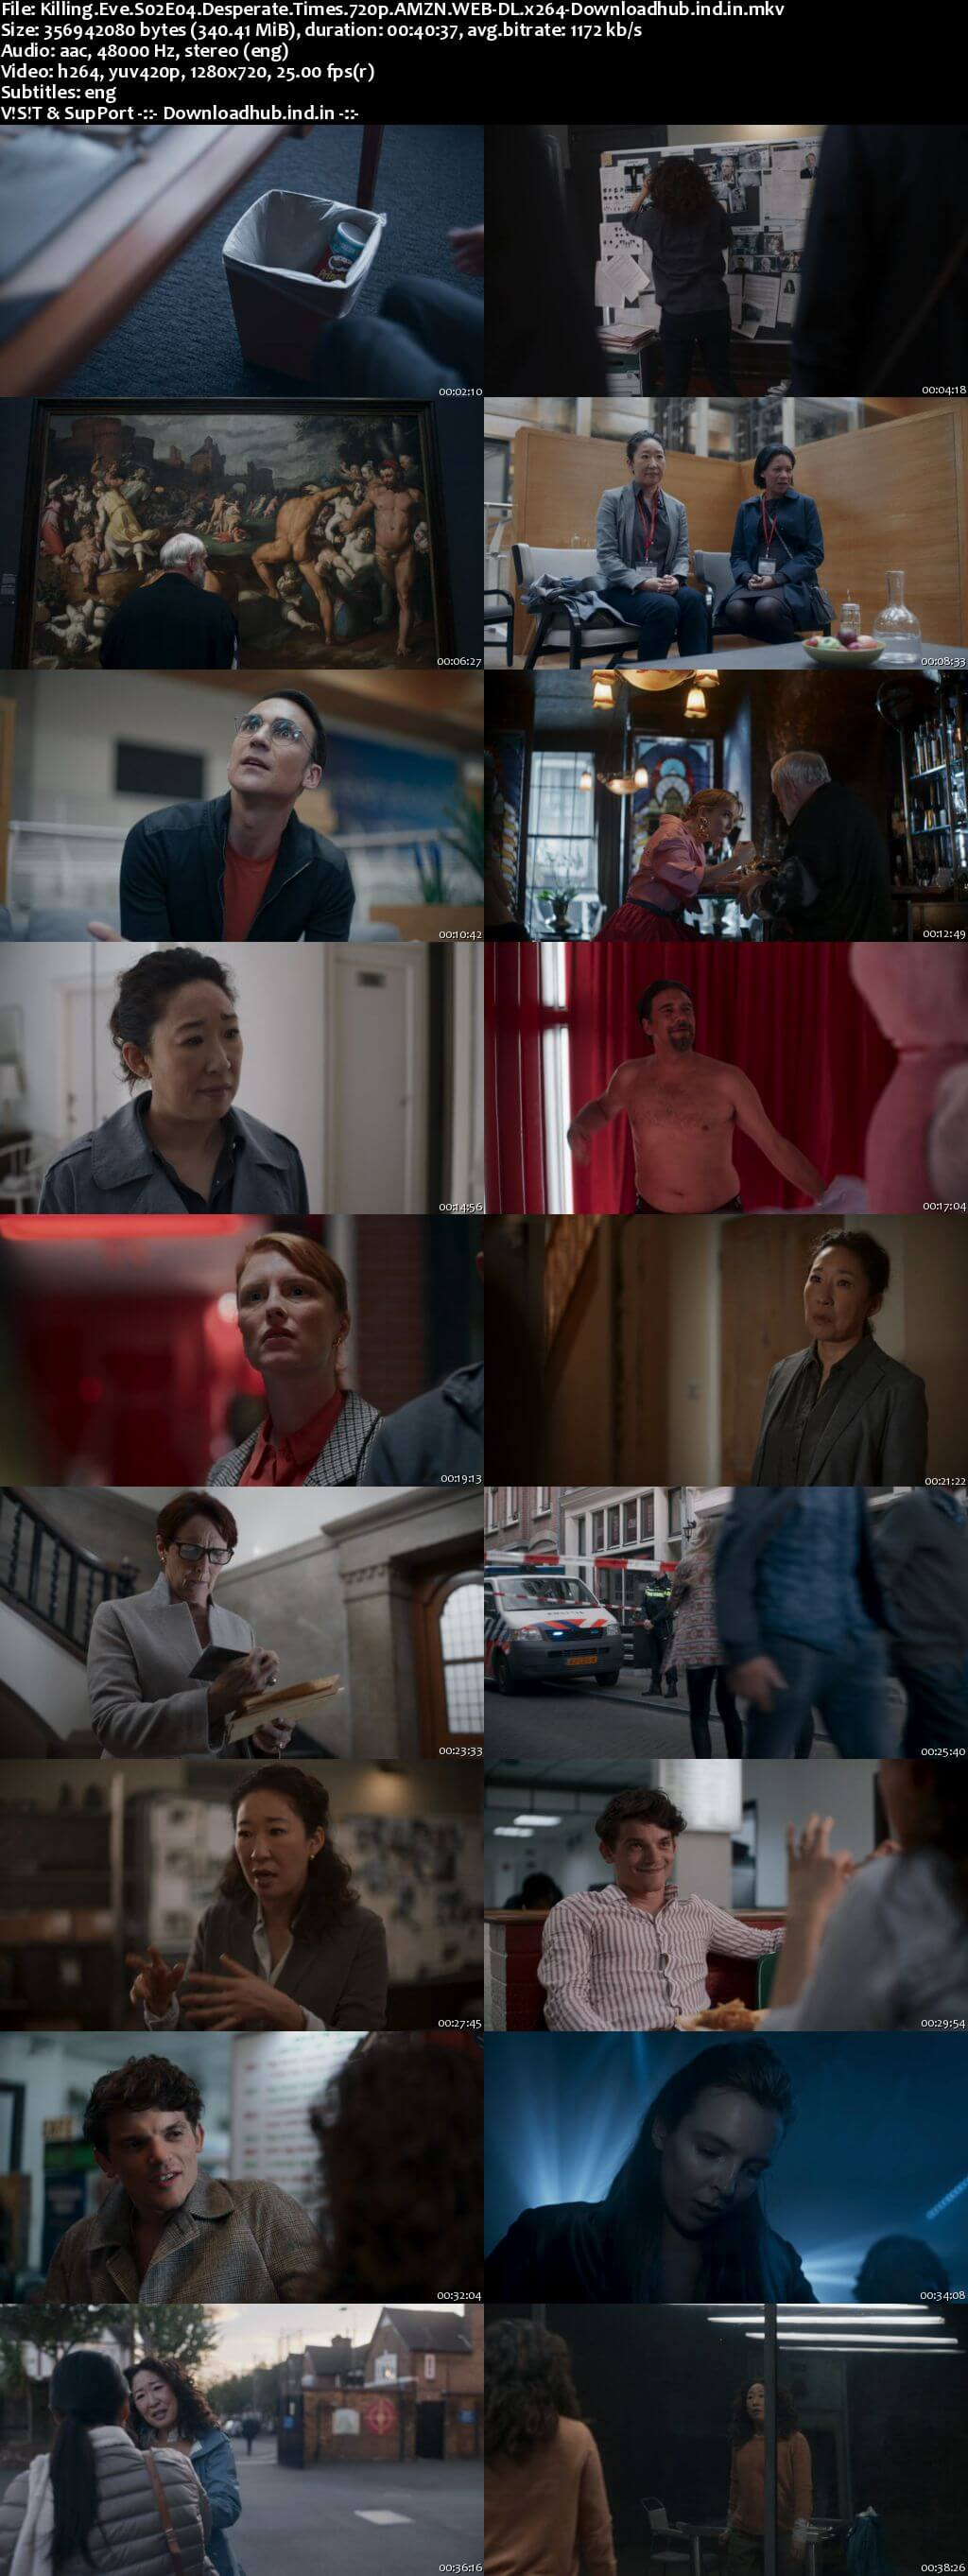 Killing Eve S02E04 350MB AMZN WEB-DL 720p ESubs